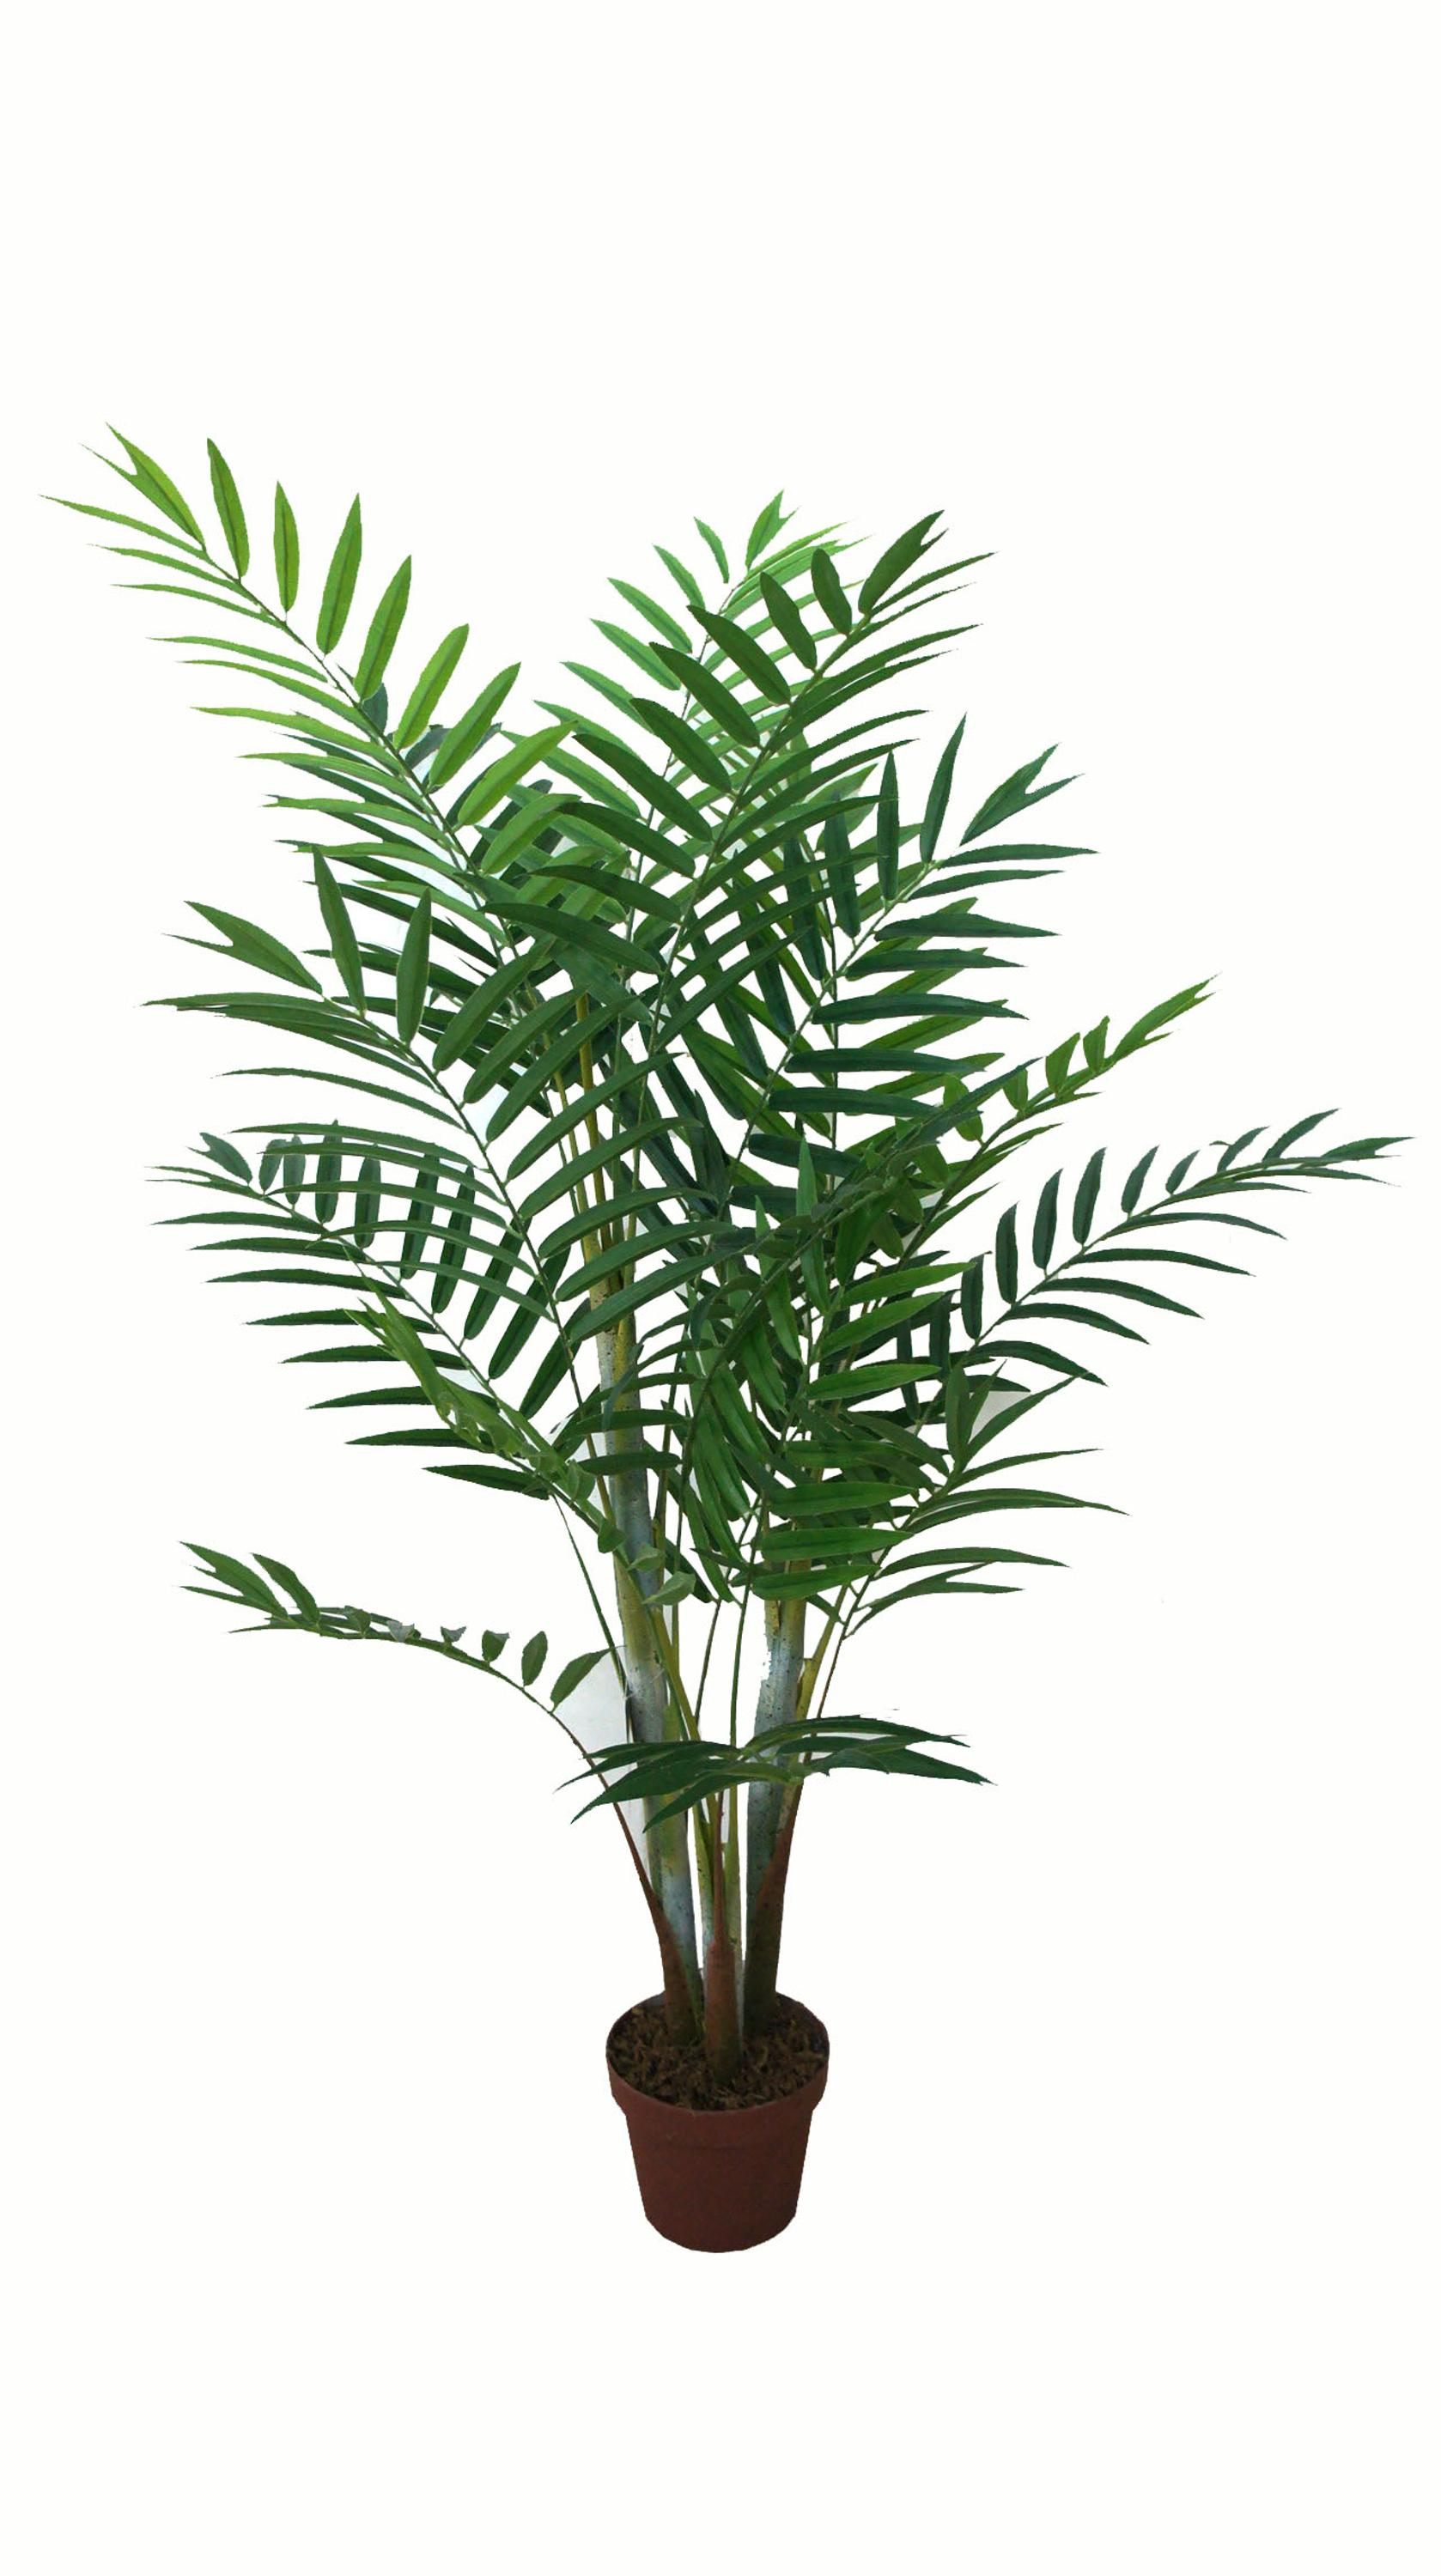 Artificial Areca Palm Tree Potted Plants Artificial Chrysalidocarpus Lutescens Bonsai Synthetic Indoor Coconut Tree Buy Artificial Chrysalidocarpus Artificial Areca Palm Tree Potted Plants Artificial Chrysalidocarpus Lutescens Bonsai Synthetic Indoor Coconut Tree Buy Bonsai Tree Artificial Palm